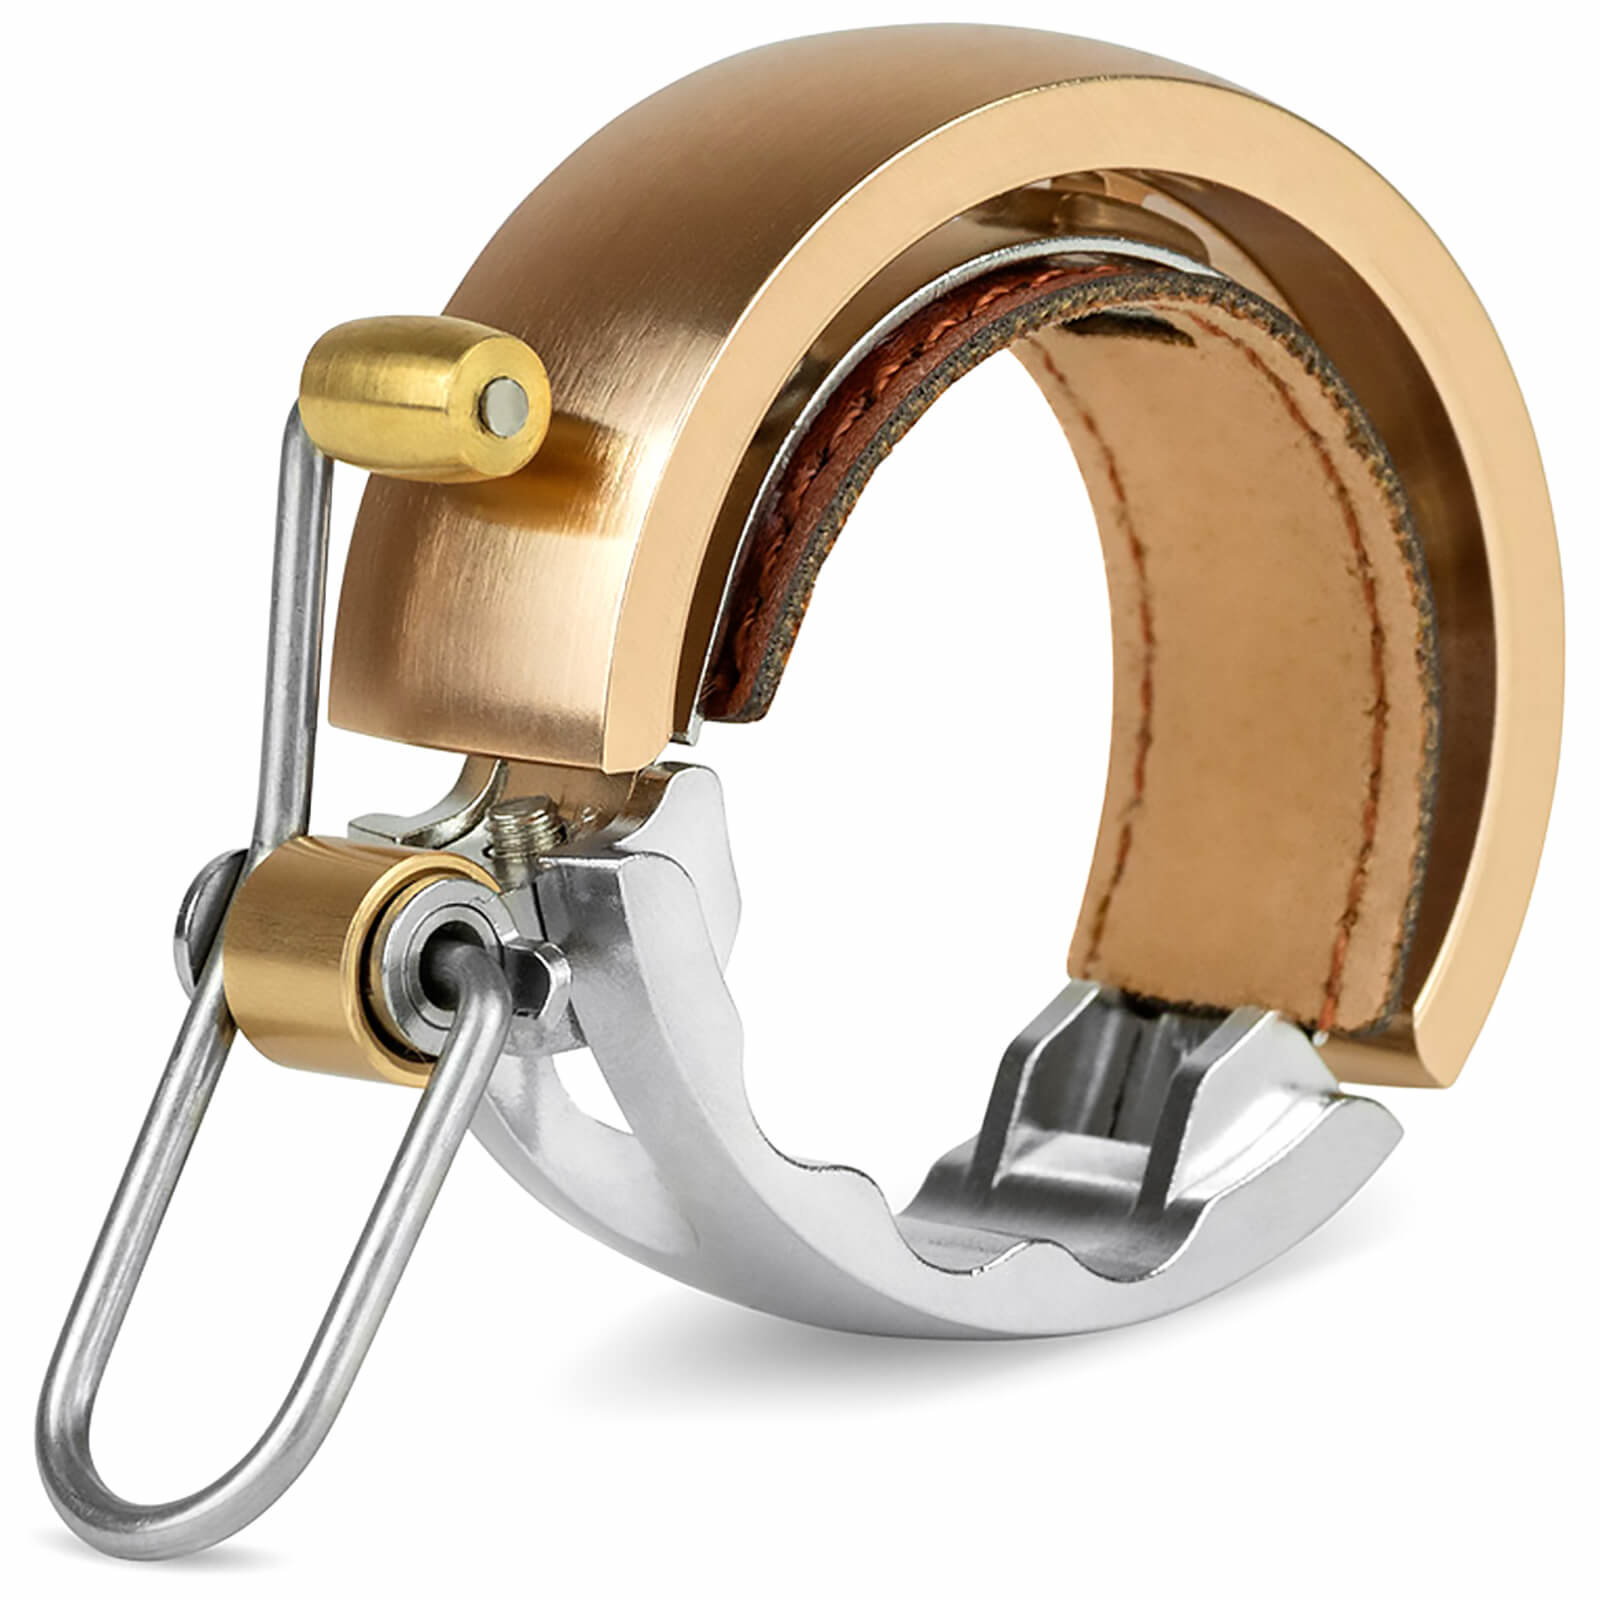 Knog Knog Oi Bell Luxe Large - Brass